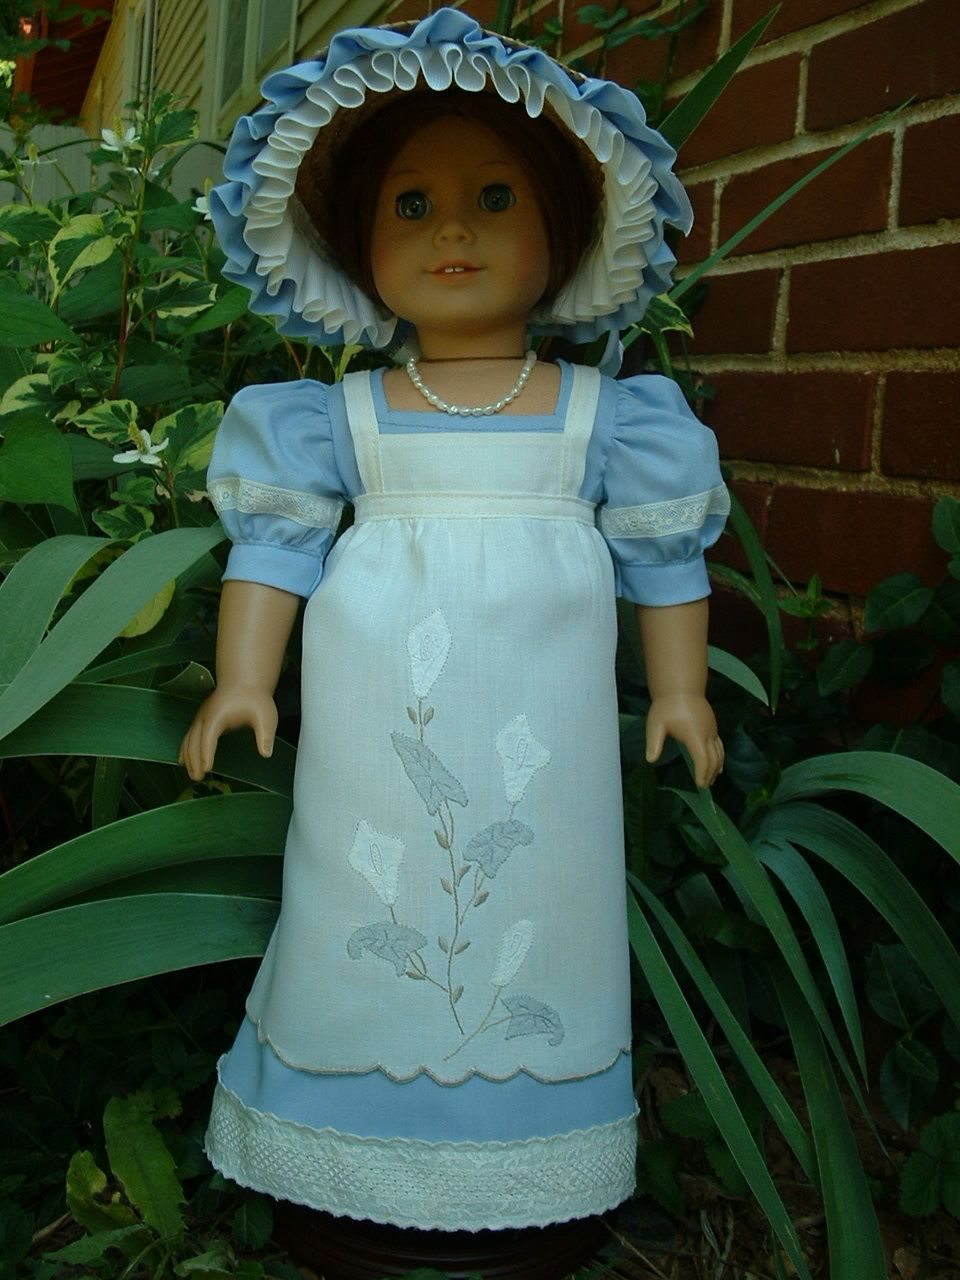 Regency Dress, Bonnet, Vintage Linen Apron  American Girl dolls OOAK